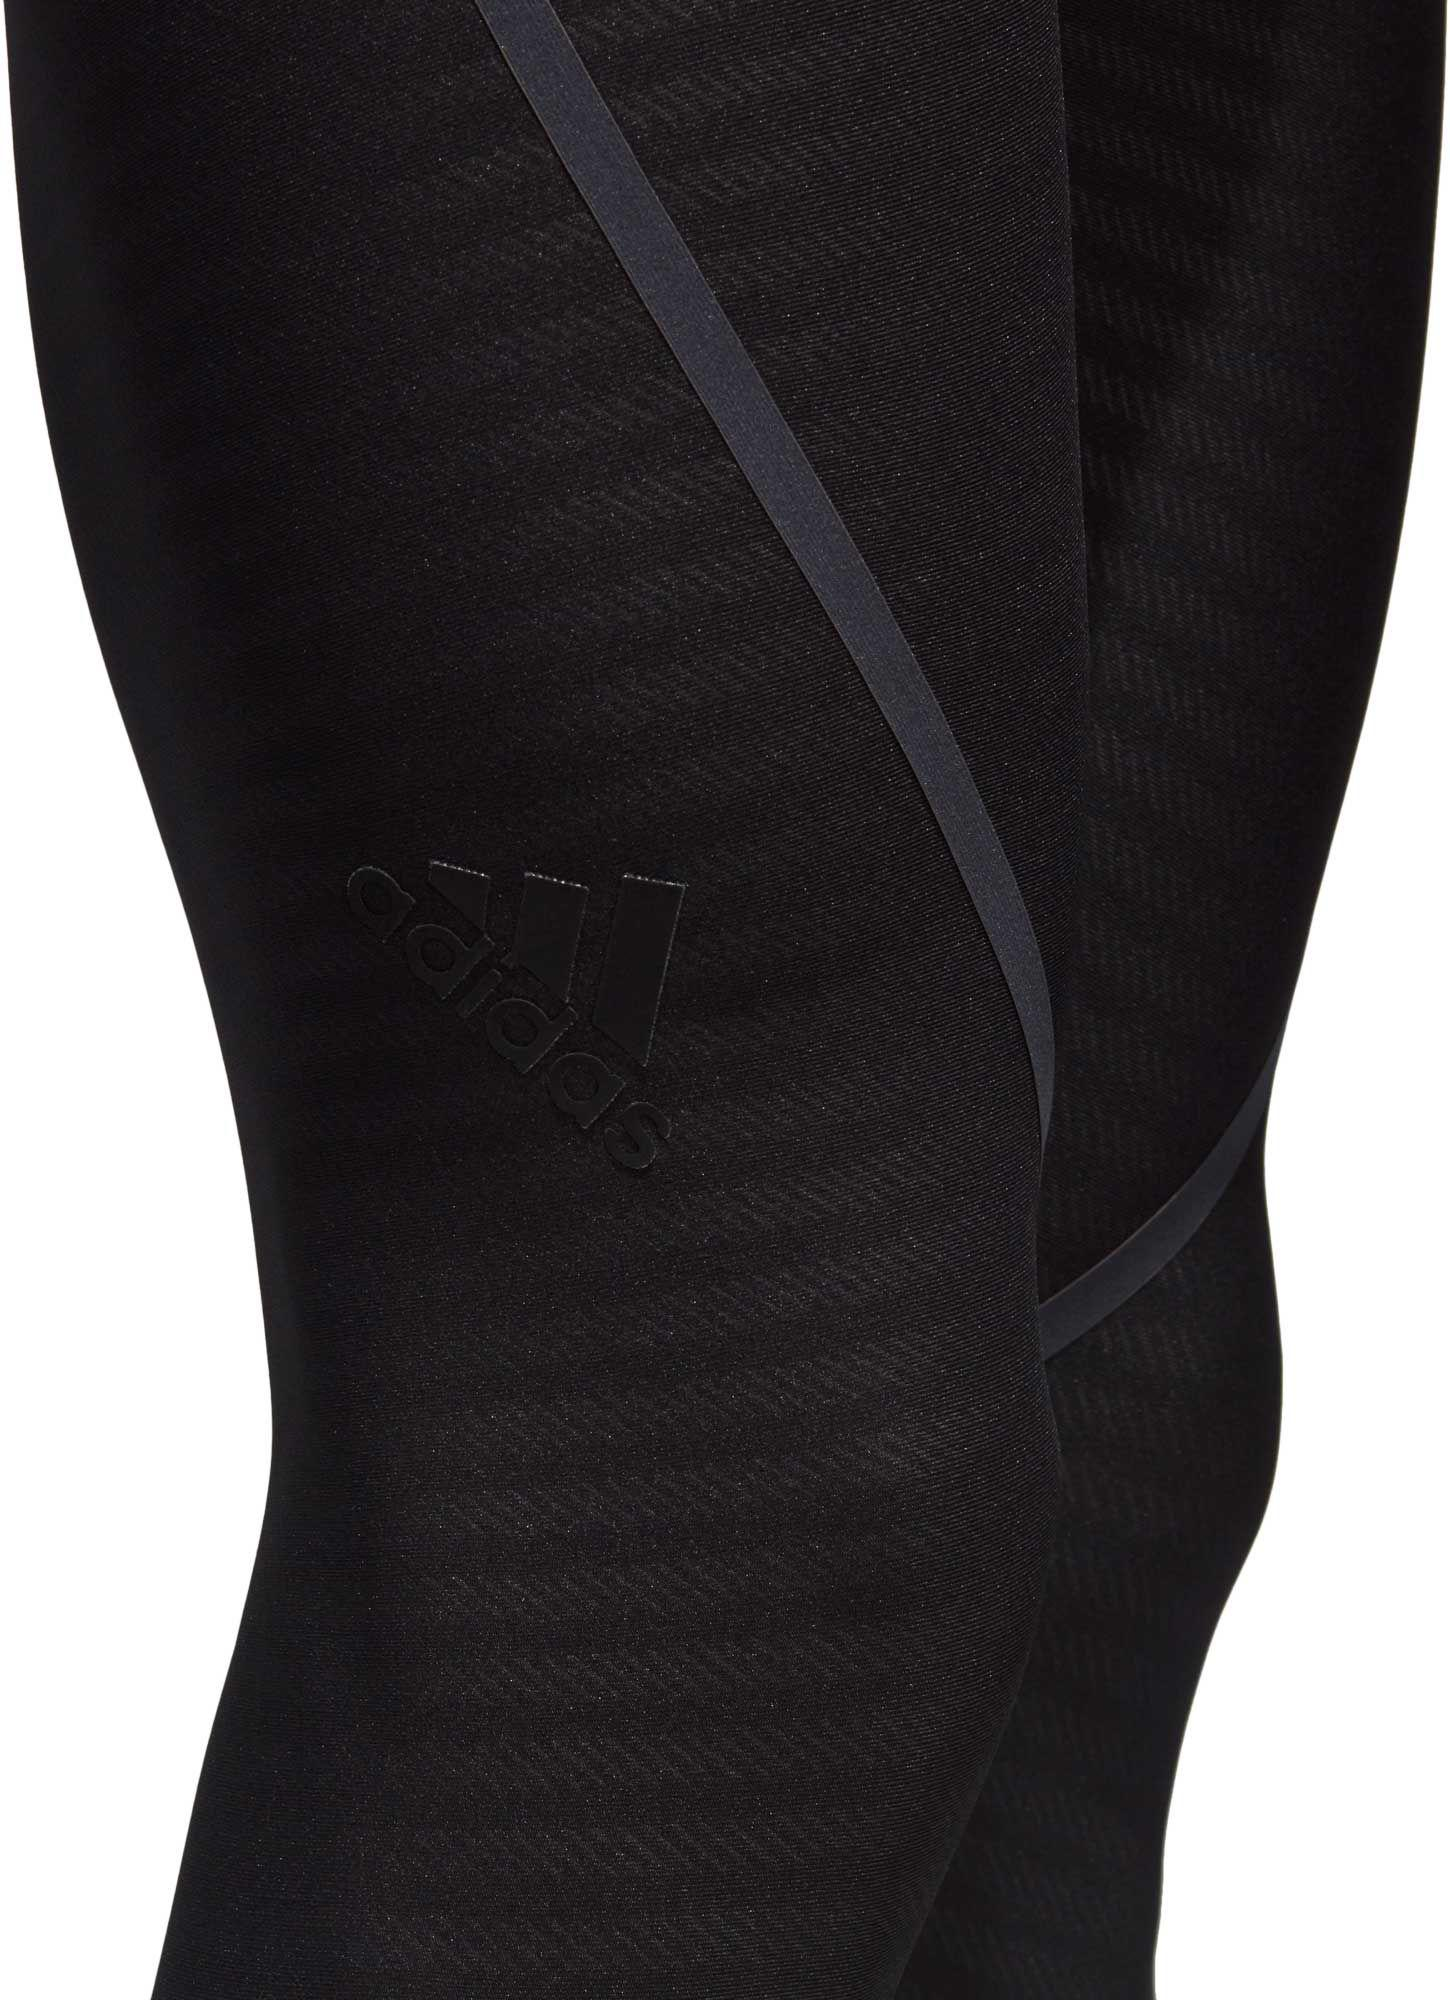 386449d413858 adidas Alphaskin 360 Training Tights in Black for Men - Lyst